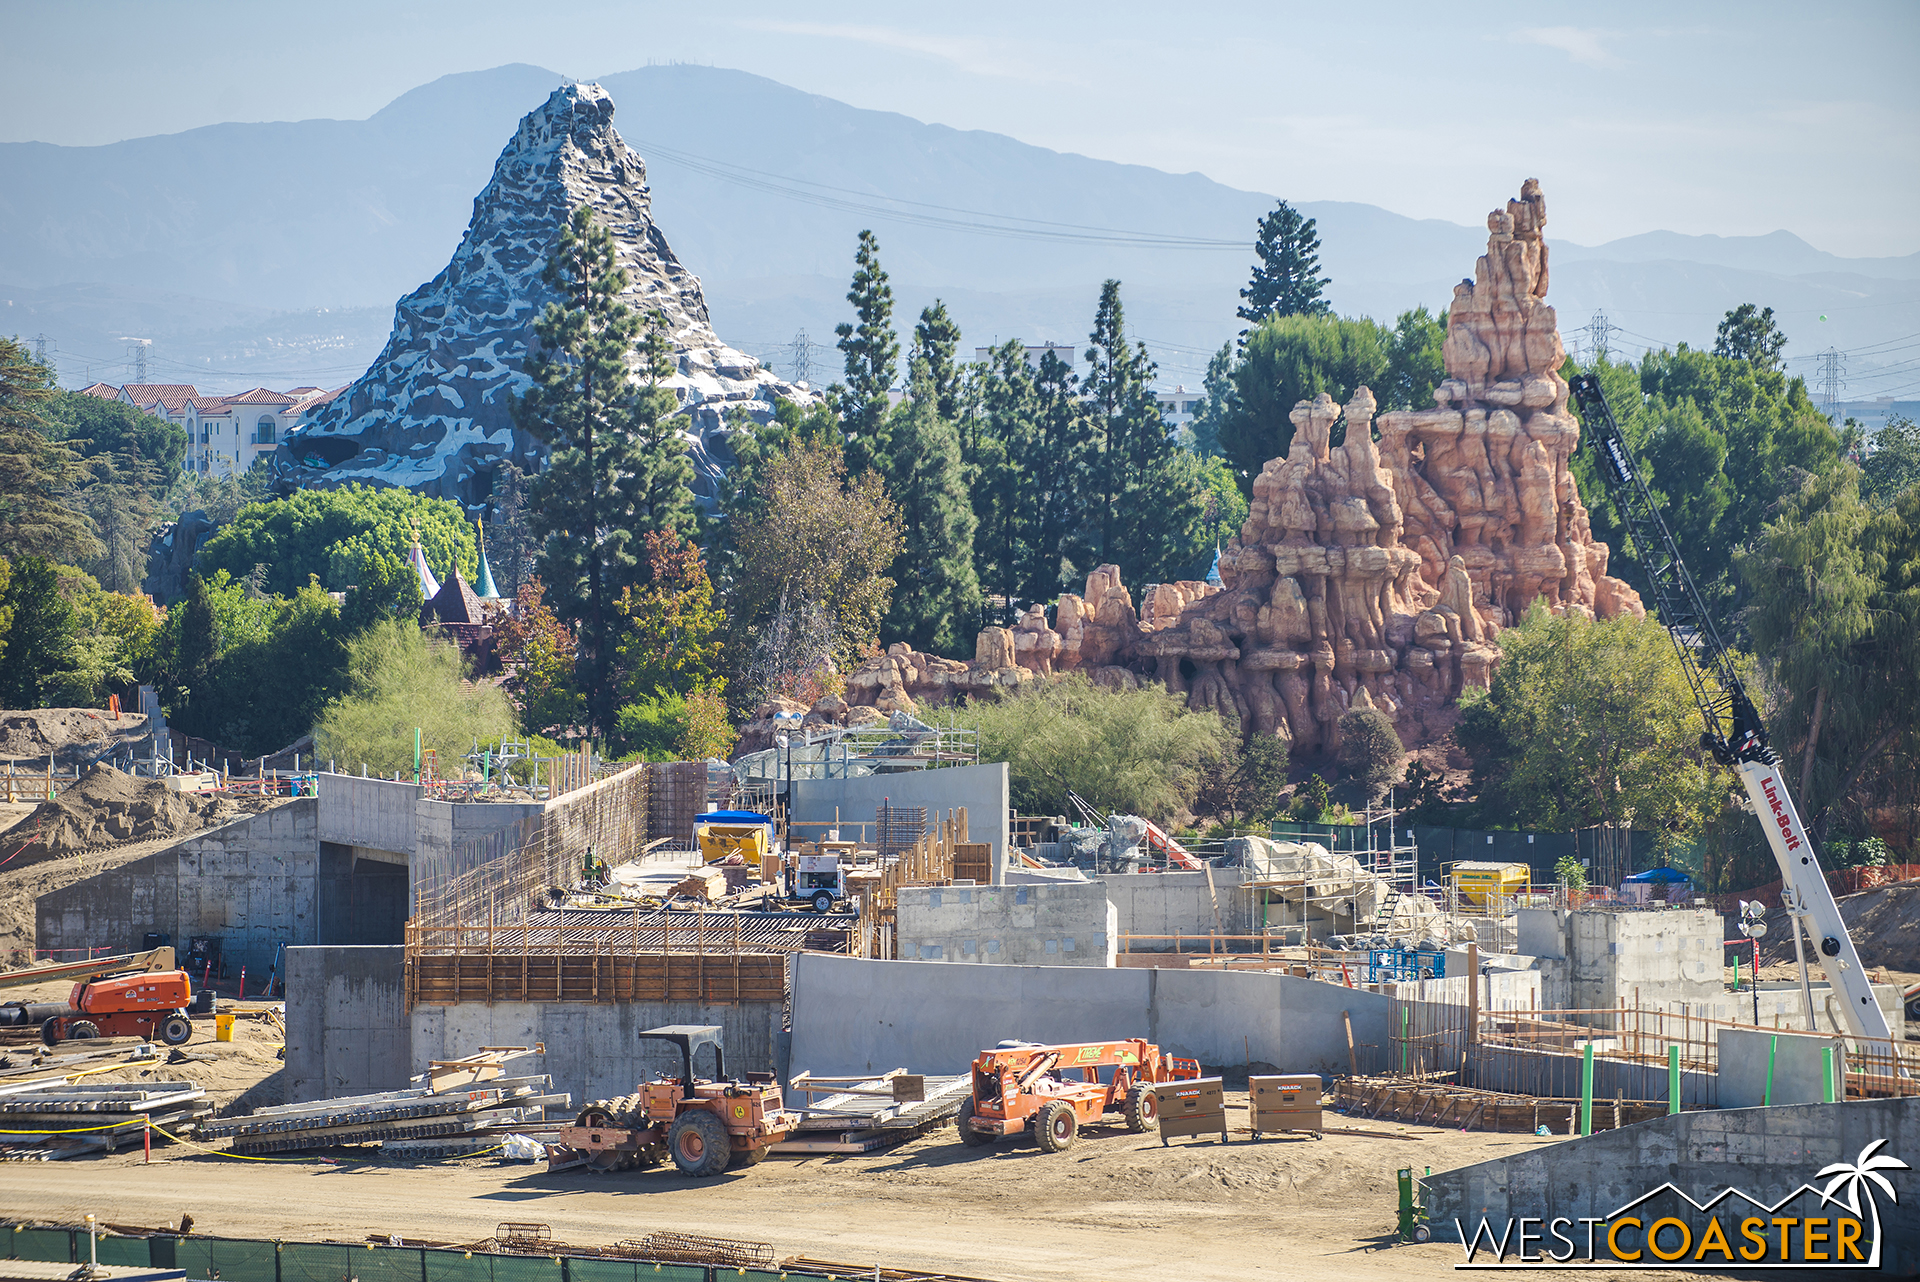 Moving over to the area behind Big Thunder Mountain.